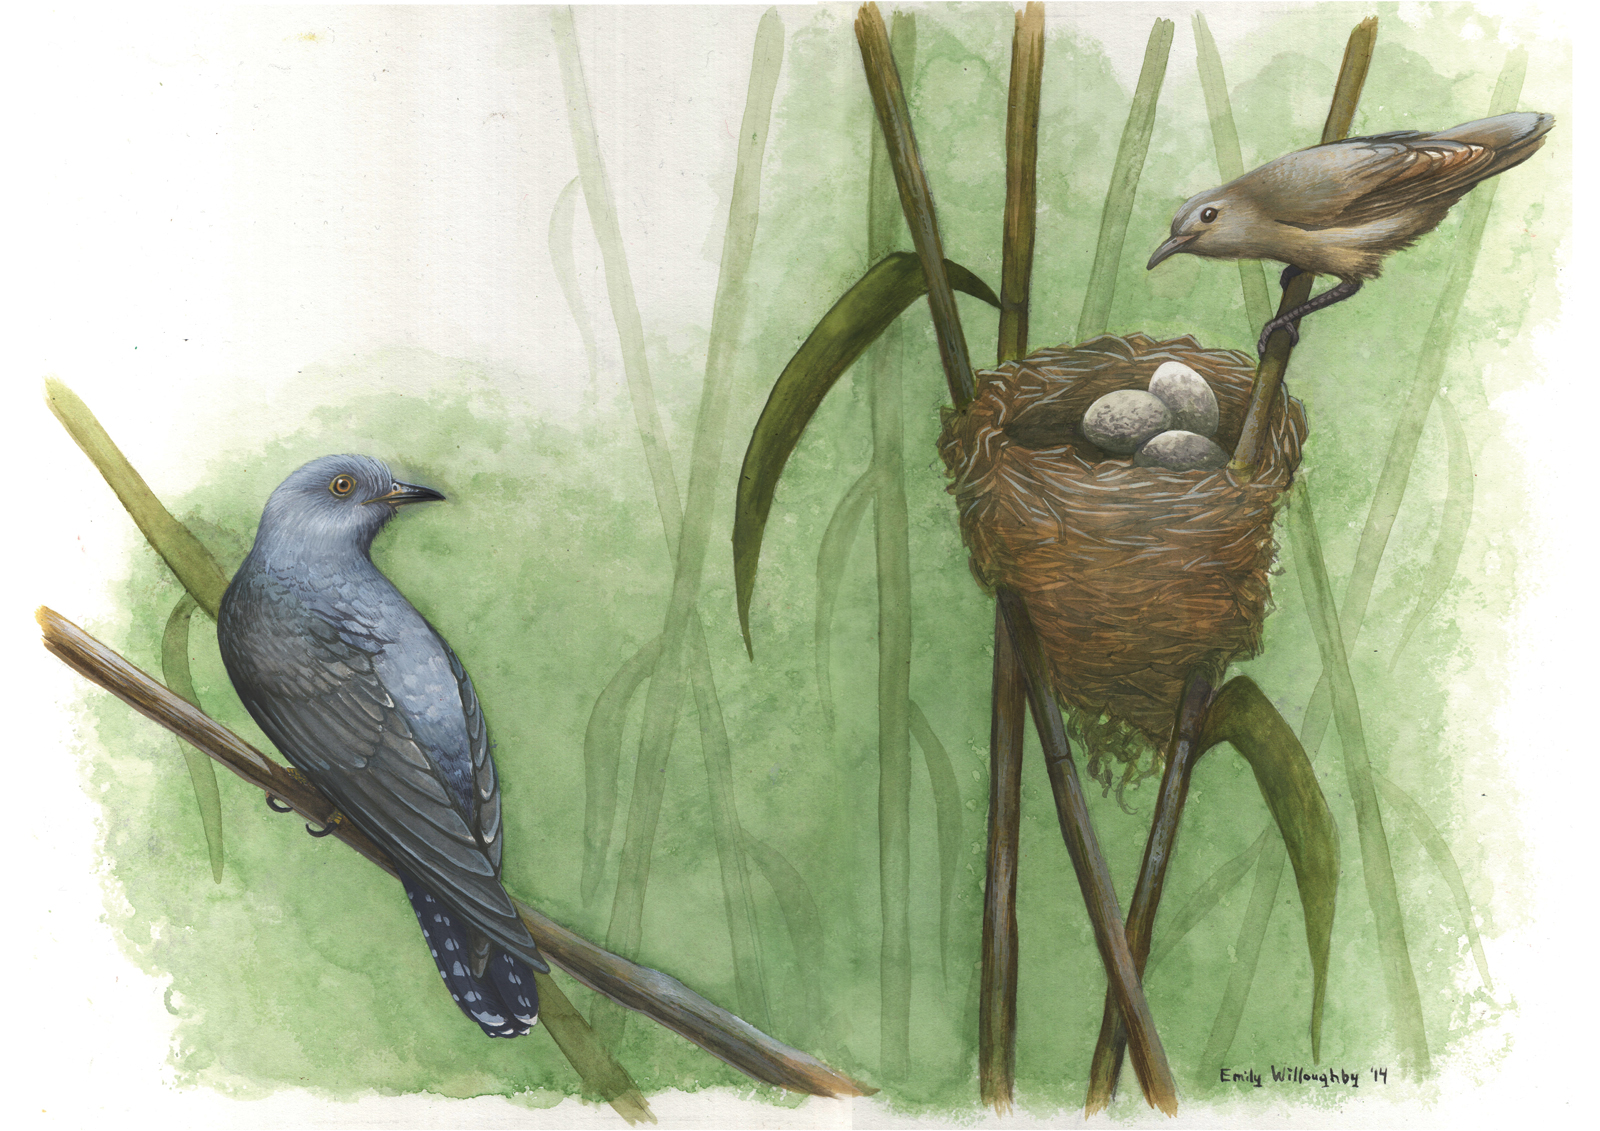 Cuckoo And Warbler Nest Parasitism 1 Emily Willoughby Art